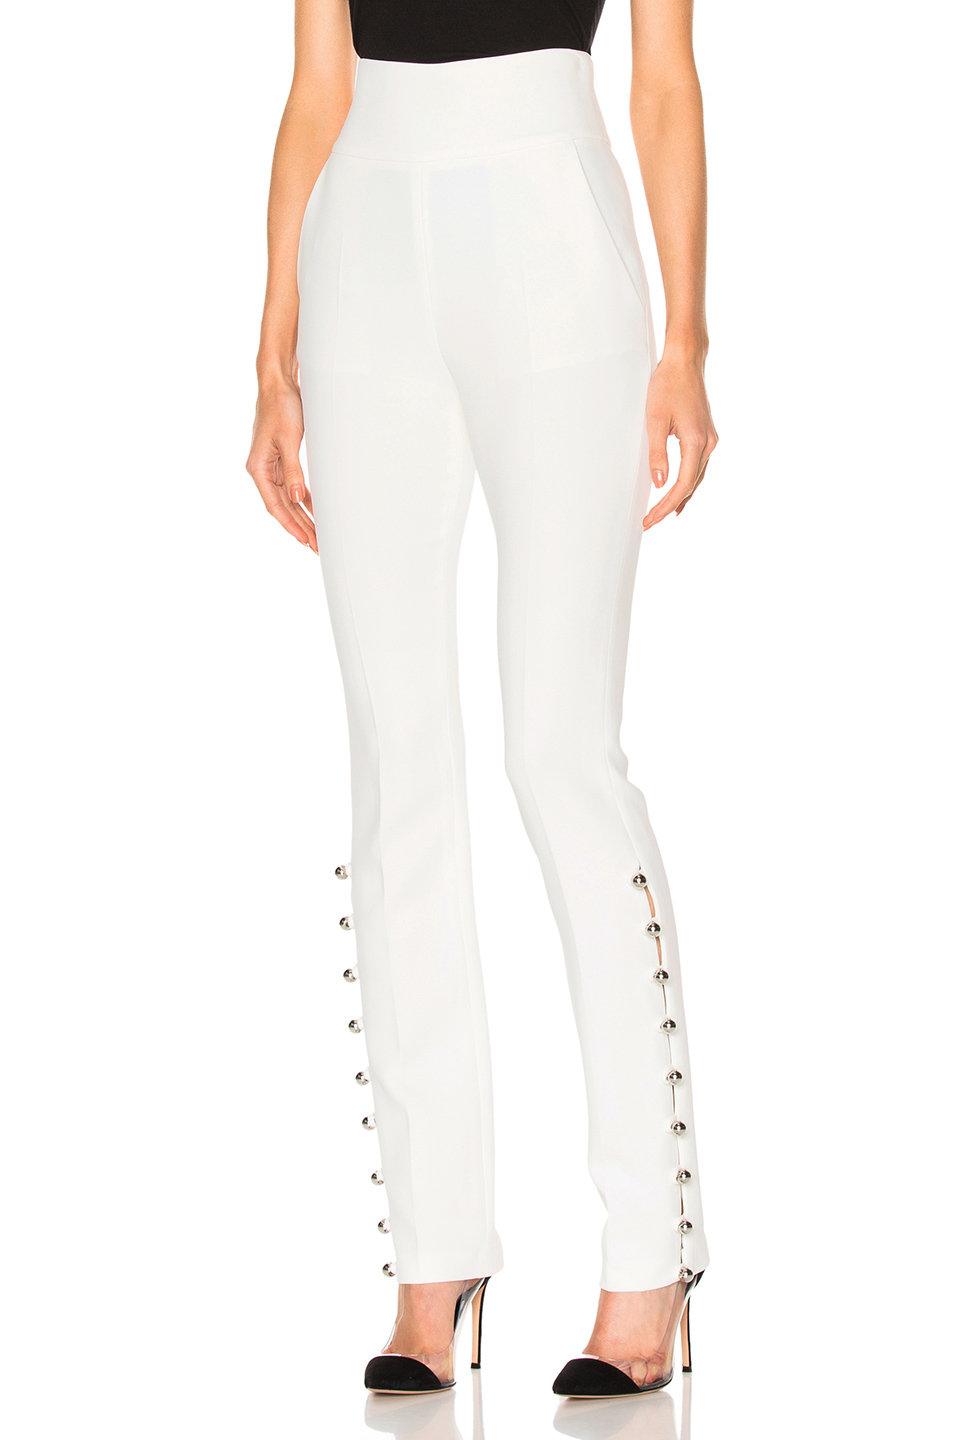 David Koma Loops & Metal Balls Hem Embroidered Trousers in White